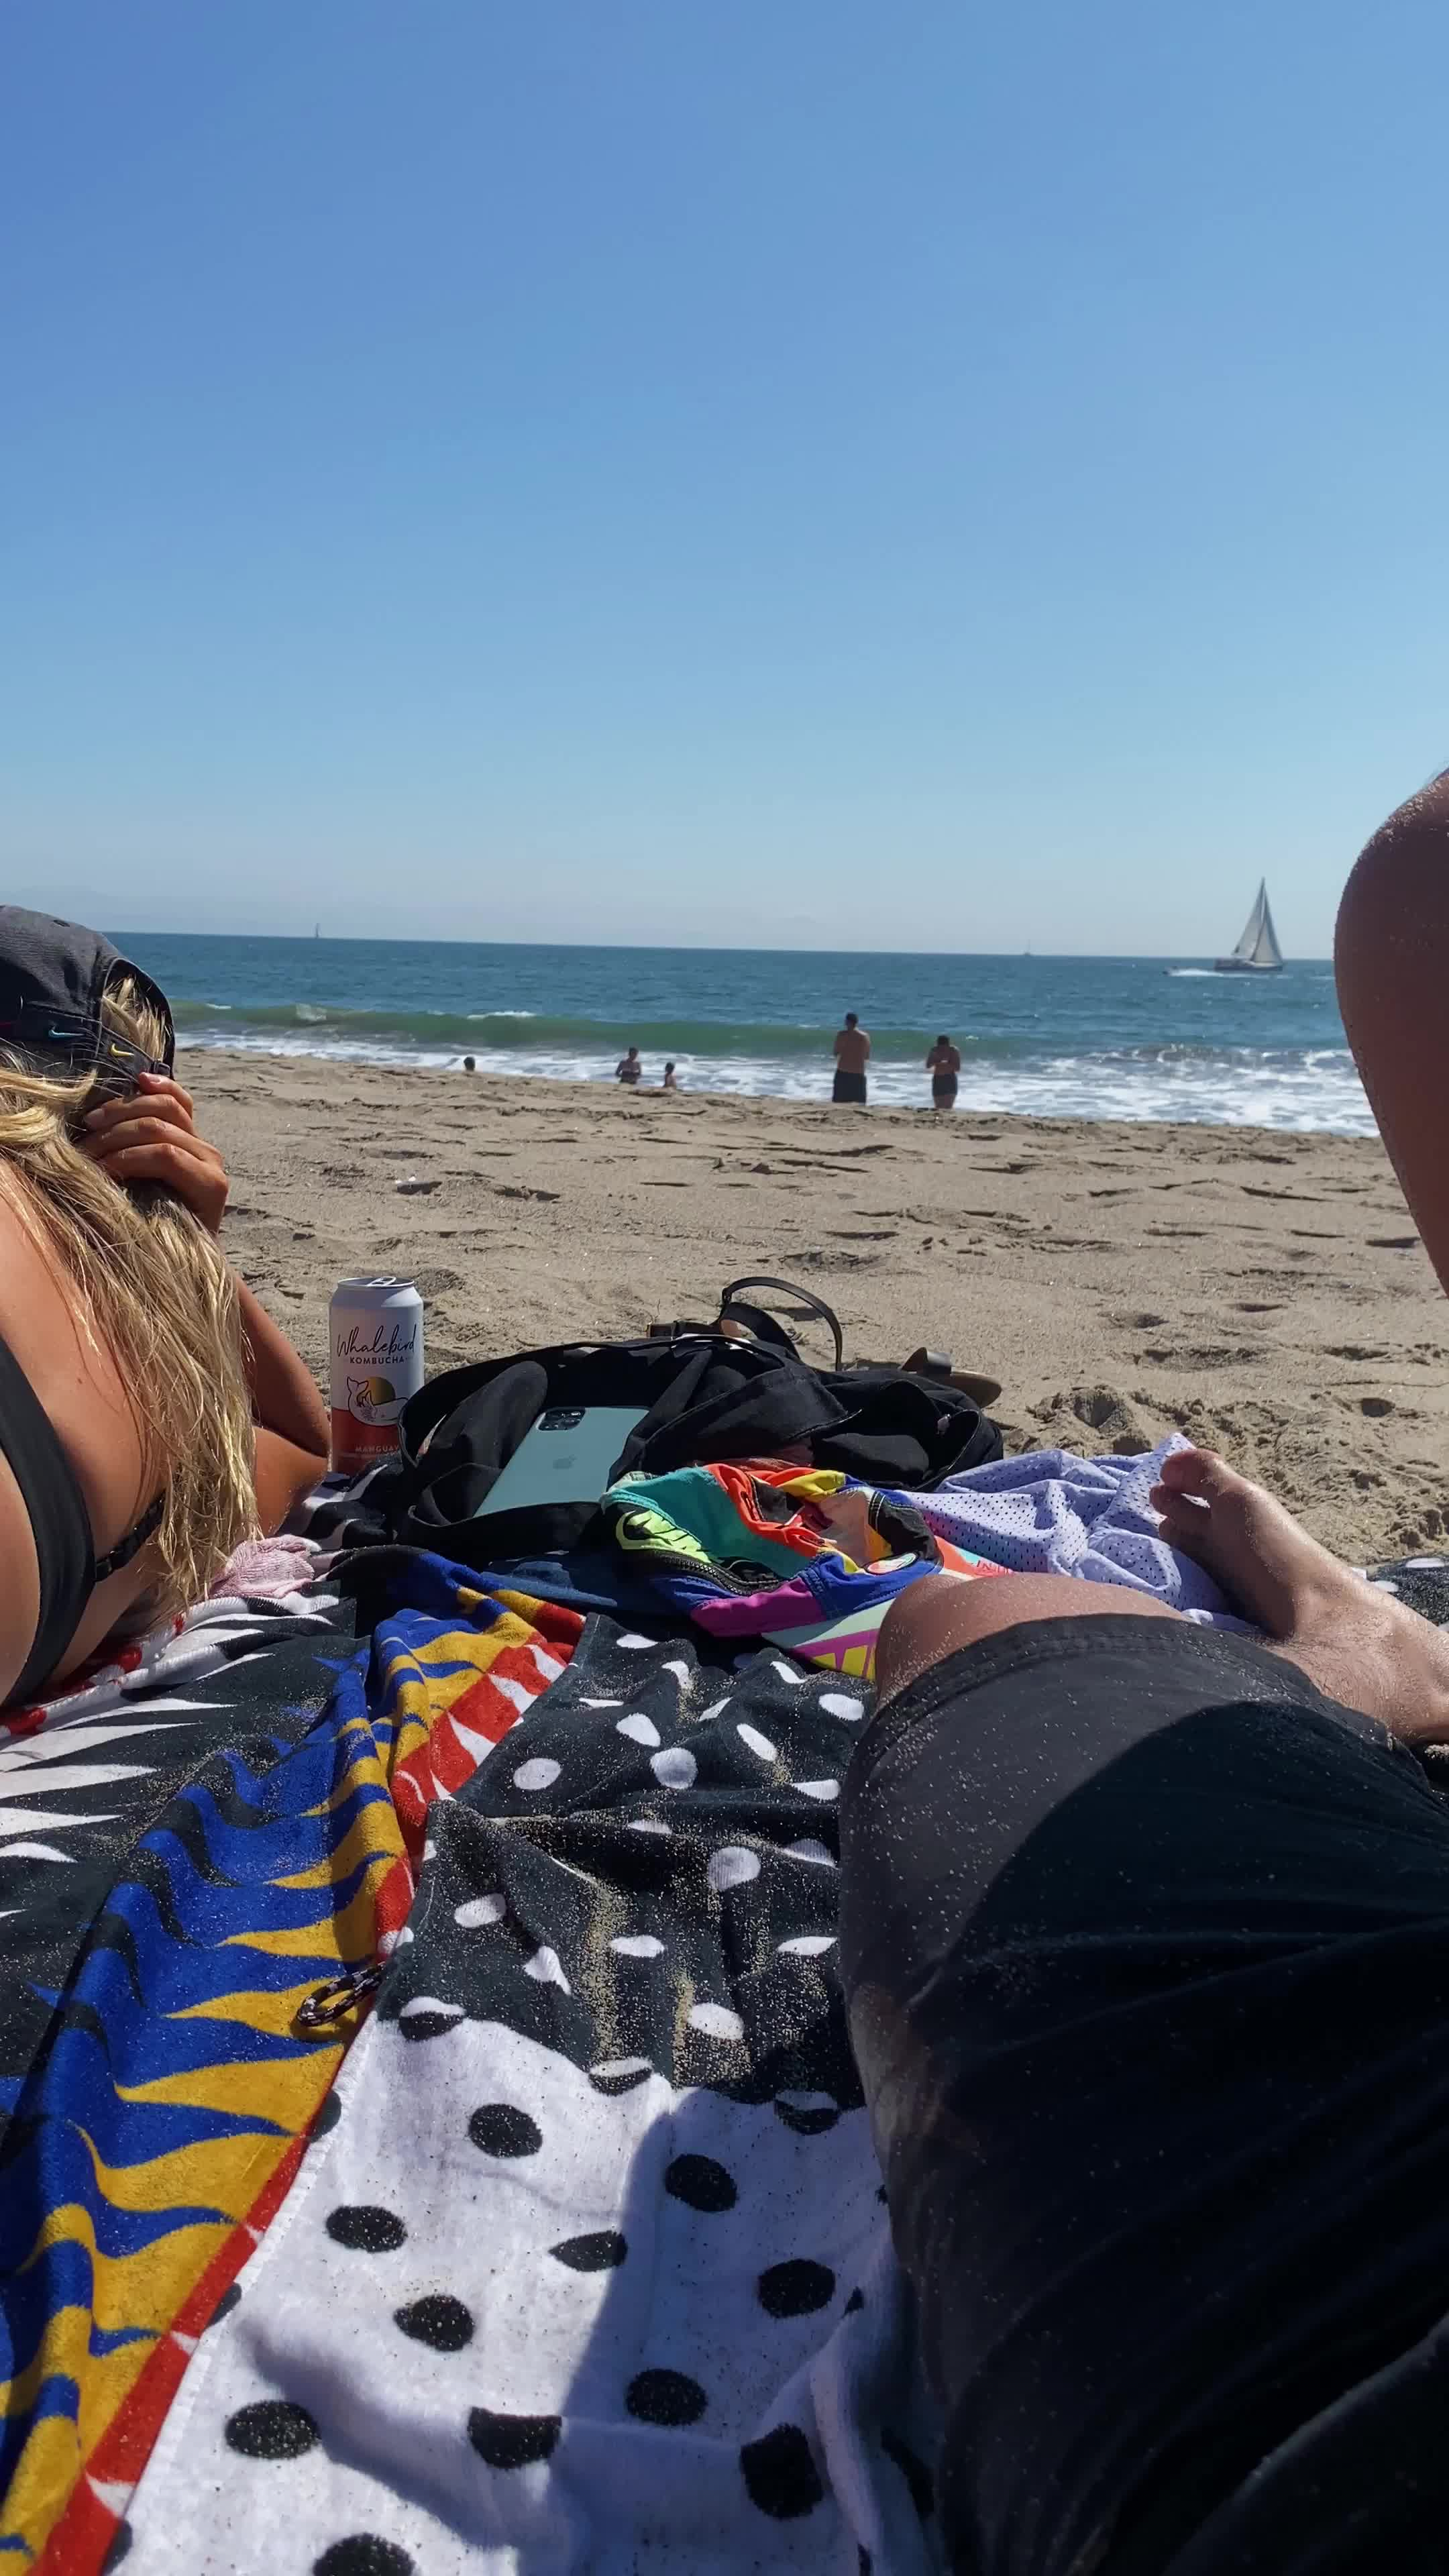 Wore a plug to the beach to make laying out more enjoyable for my beach bum.